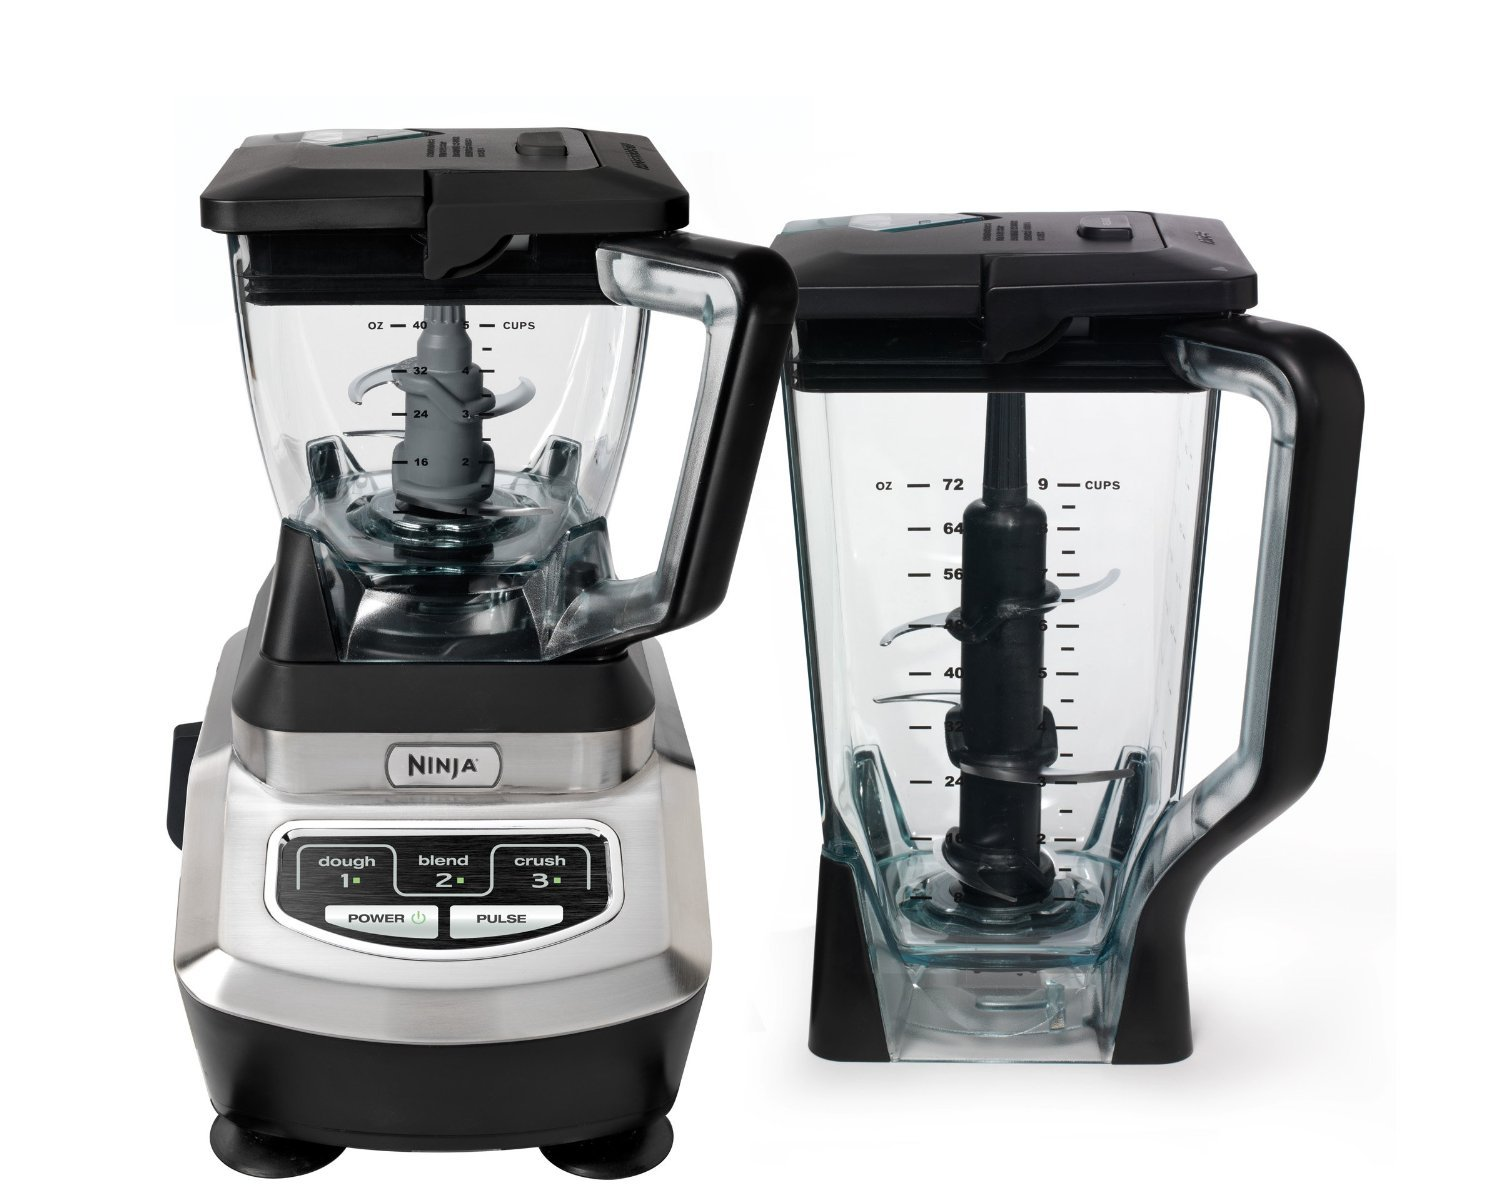 Ninja Ultra Kitchen System 1200: Amazon.ca: Home